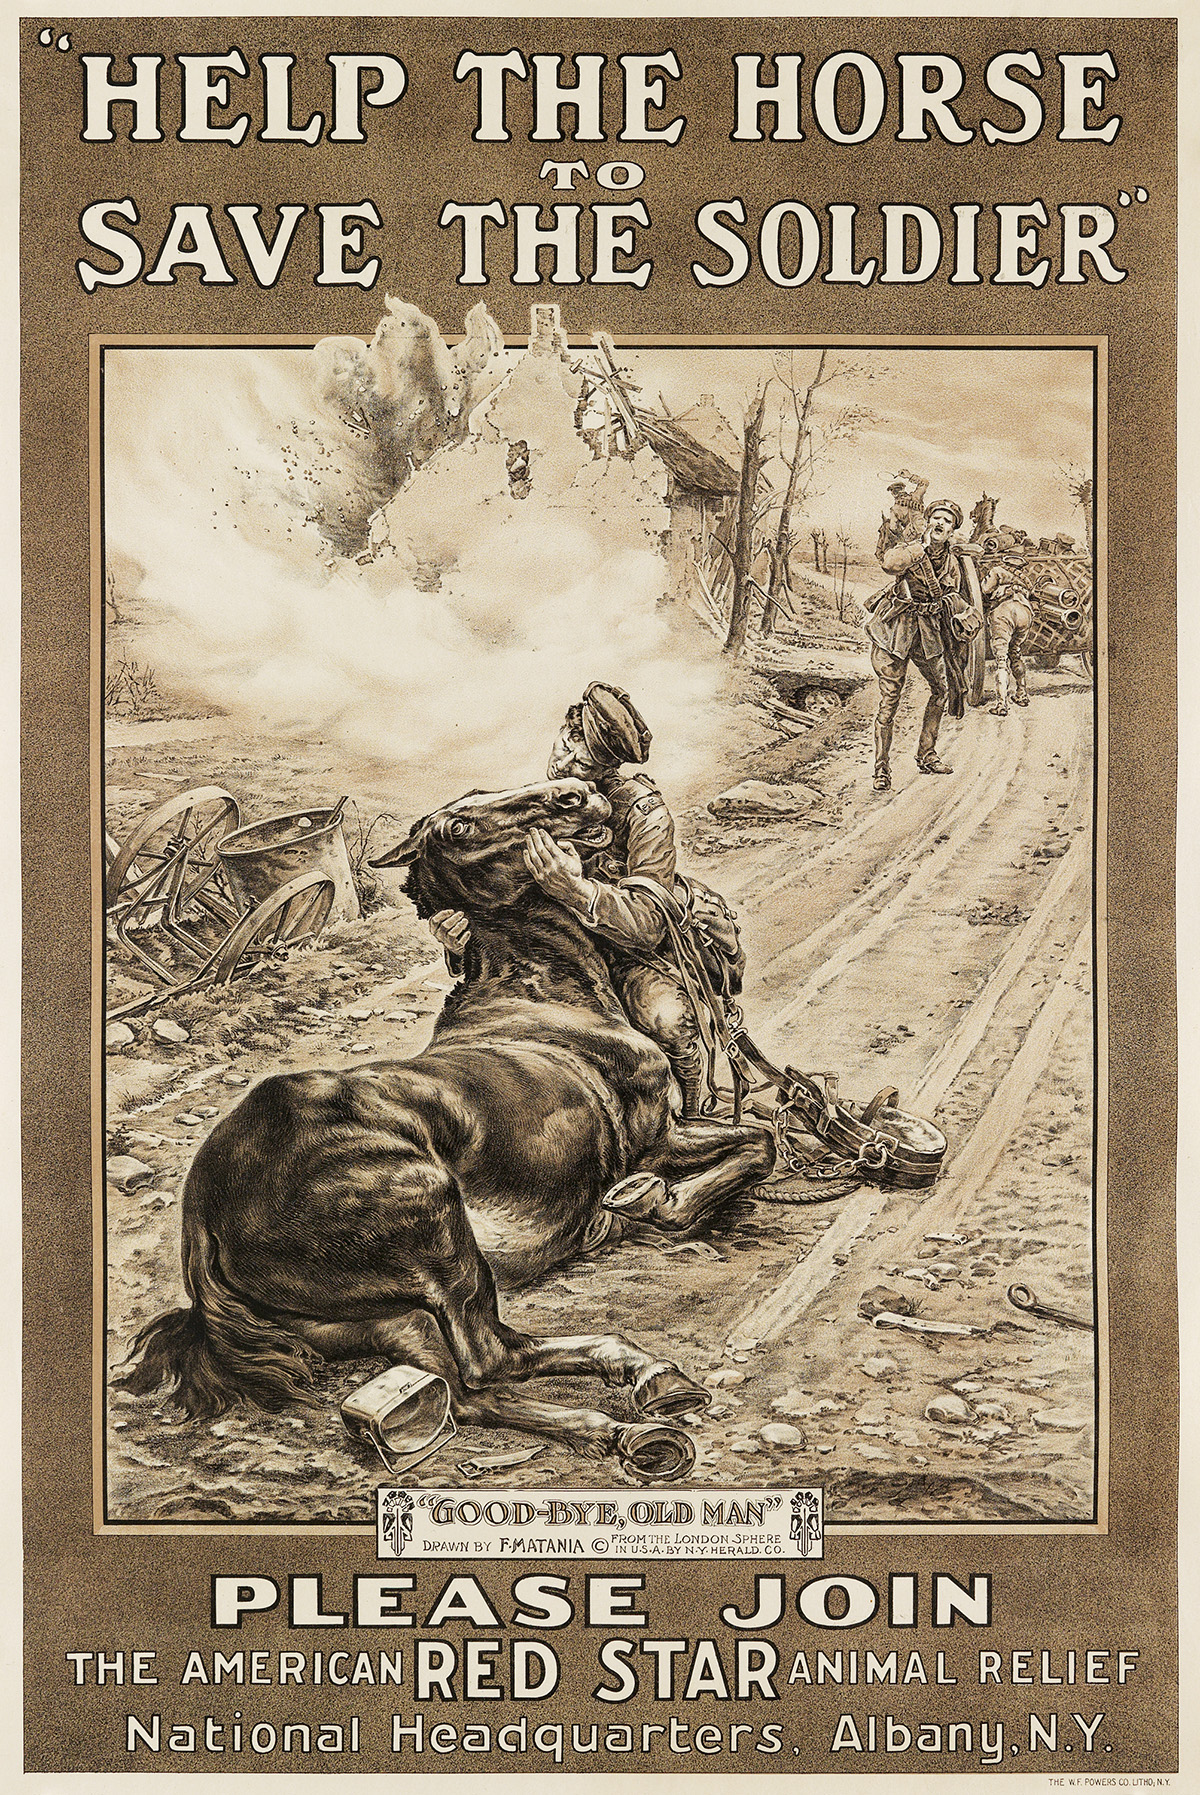 FORTUNINO MATANIA (1881-1963). HELP THE HORSE TO SAVE THE SOLDIER. Circa 1917. 30x20 inches, 76x51 cm. The W.F. Powers Co. Litho., Ne